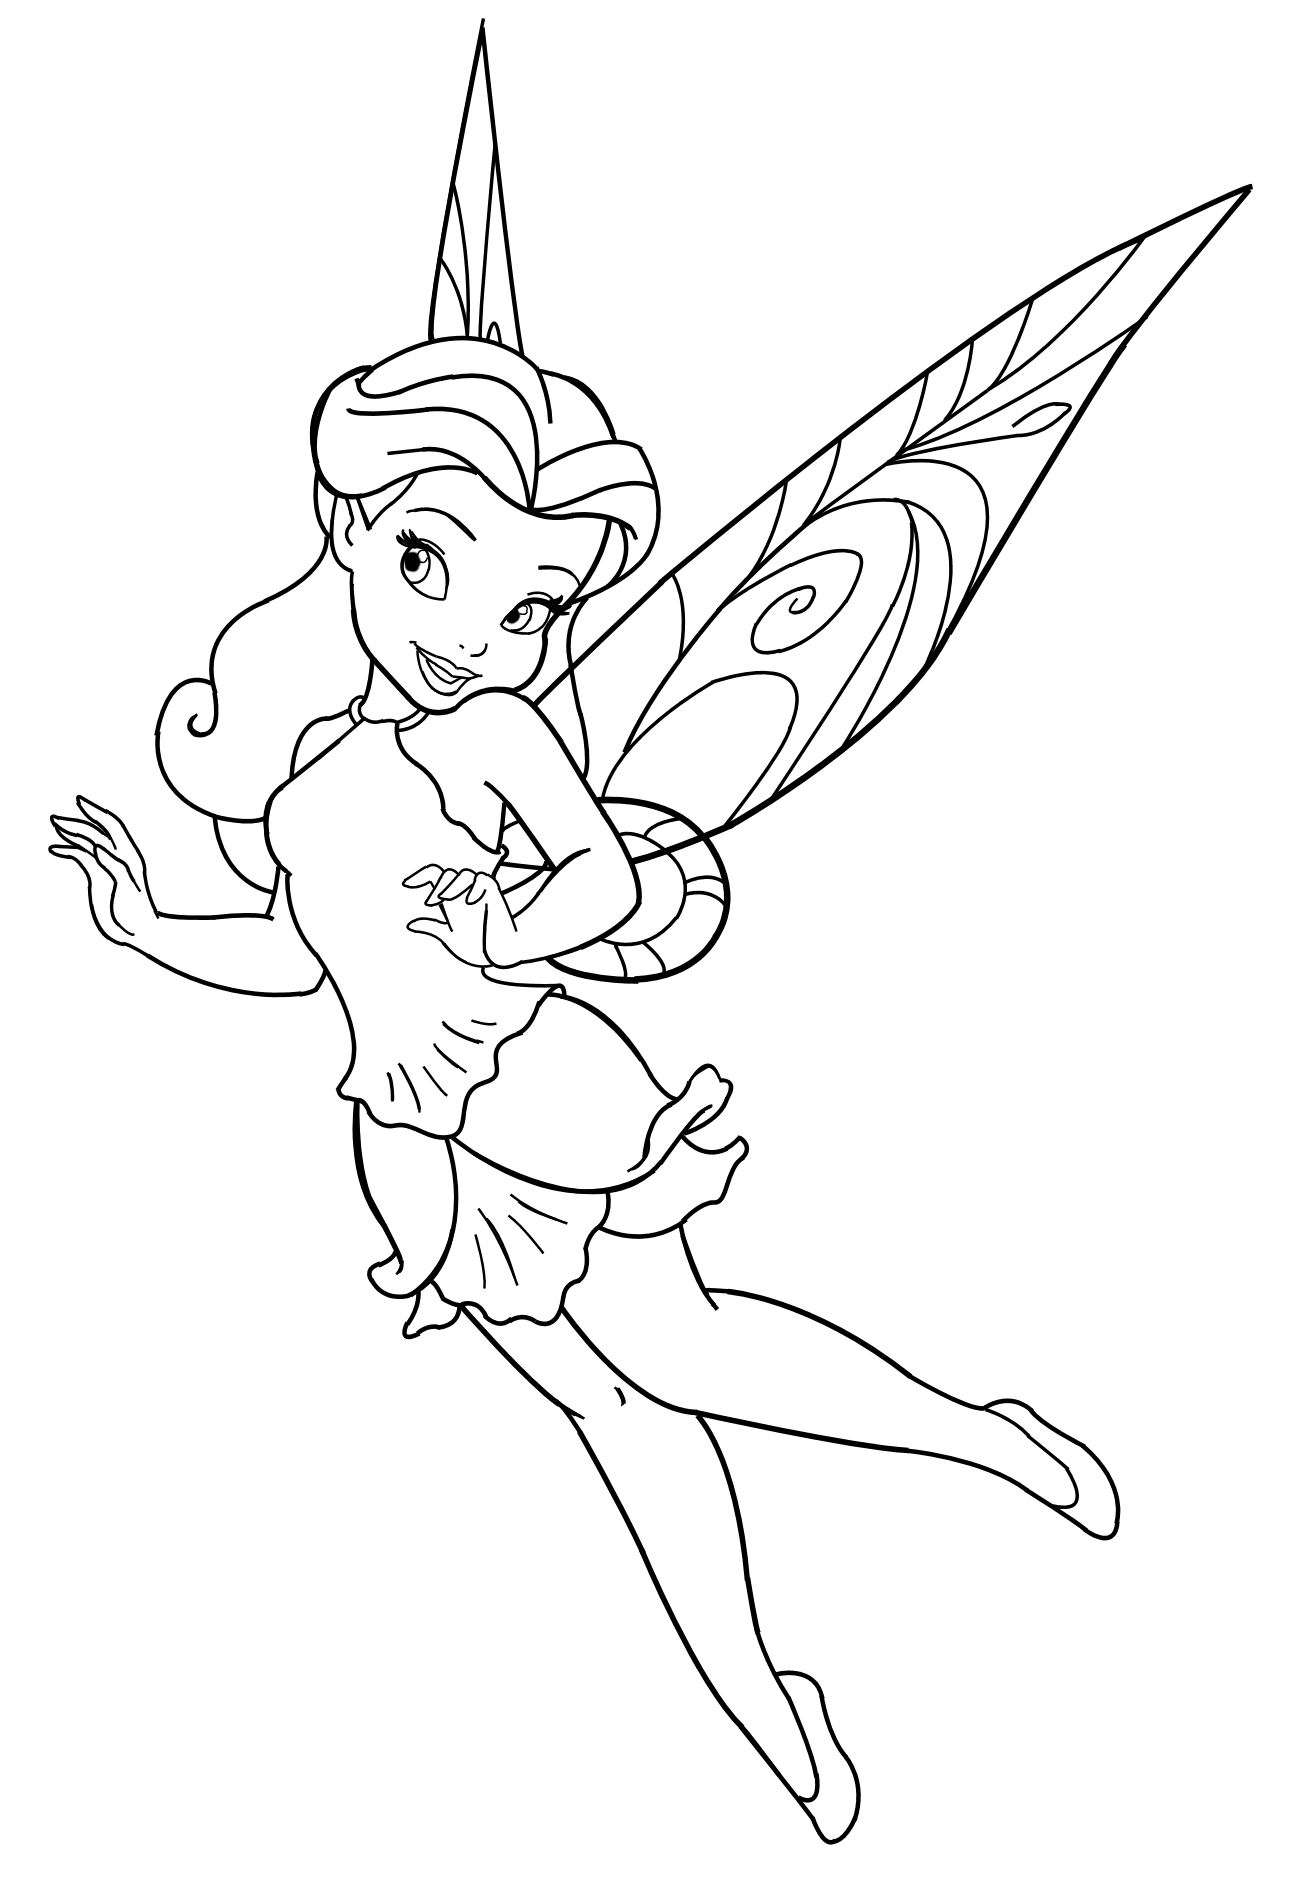 1291x1884 Peter Pan And Tinkerbell Coloring Pages Free Printable Cartoons